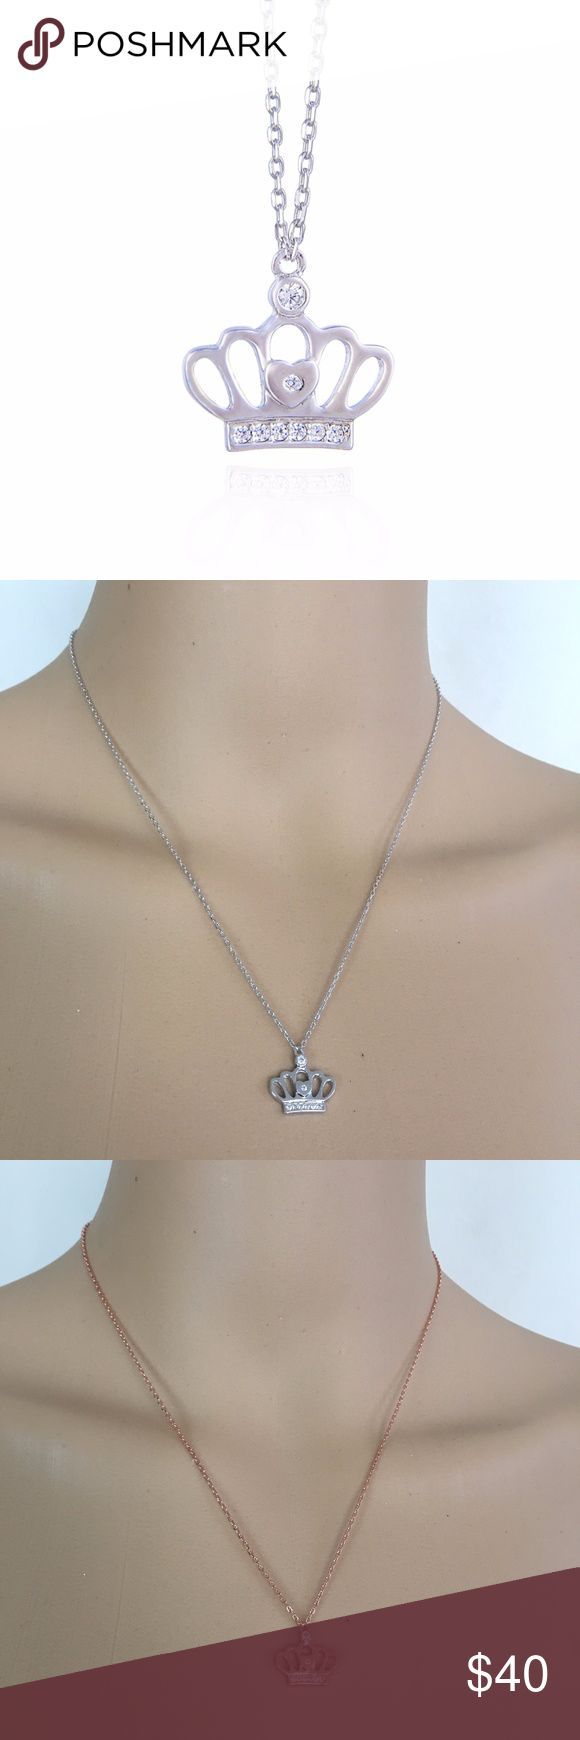 Quinn crown design wth zircon stone woman necklace Brand New - 2 color option - with zircon stone. Product is genuine 925 Sterling Silver. Perfect gift for all special days. 100% safe for sensitive skin. You can keep long time wearing. All items are well packed and come with fine gift box. No wrapping needed. This splendid necklace pendant with the best quality you can find with simulated diamond and sterling silver.  It has Diamond Standard of technology. All of the stone process is done…